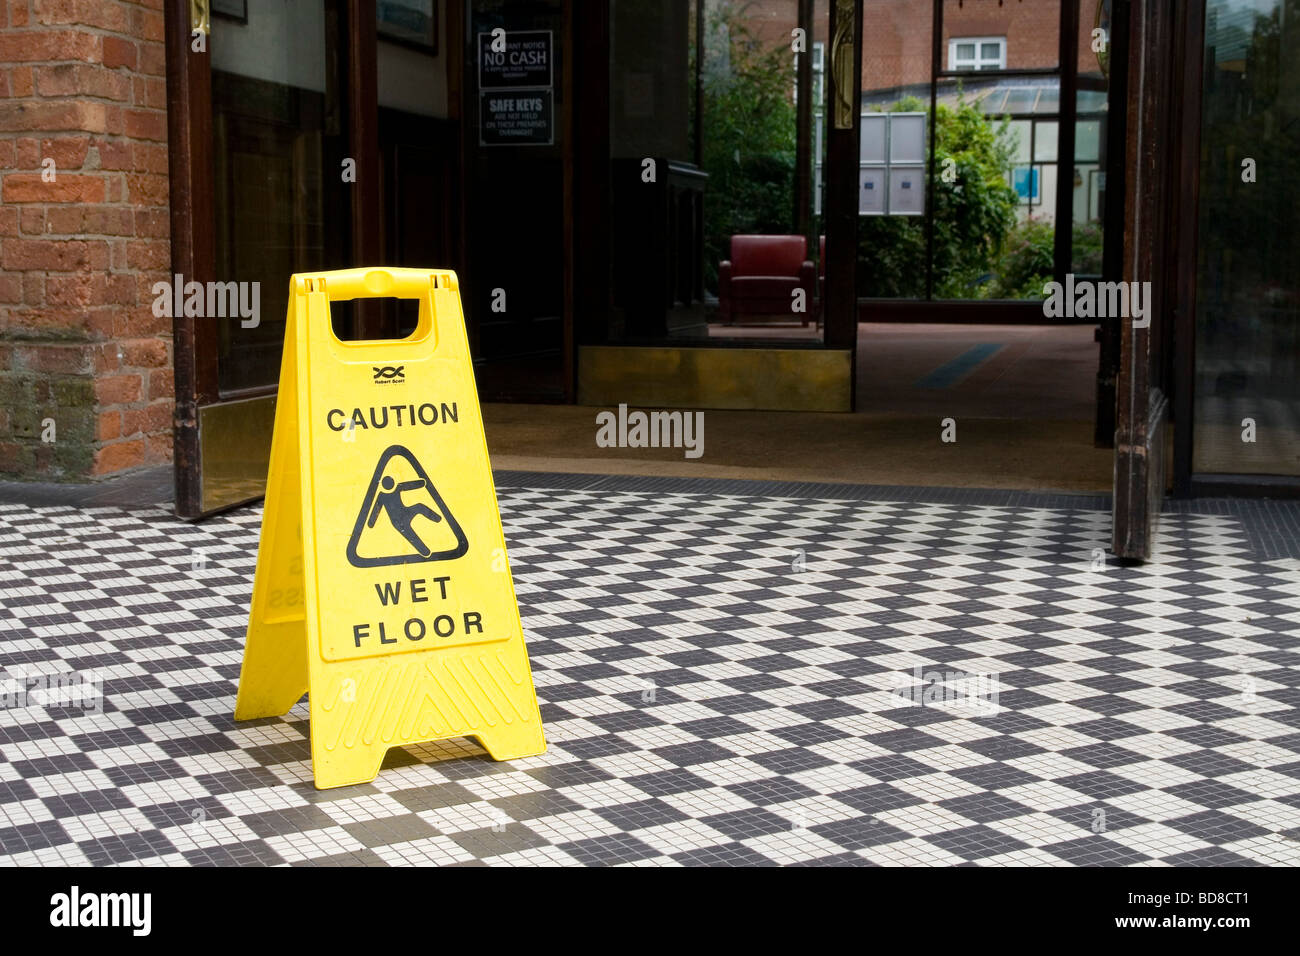 A hotel entrance with a wet floor slippery surface danger sign - Stock Image